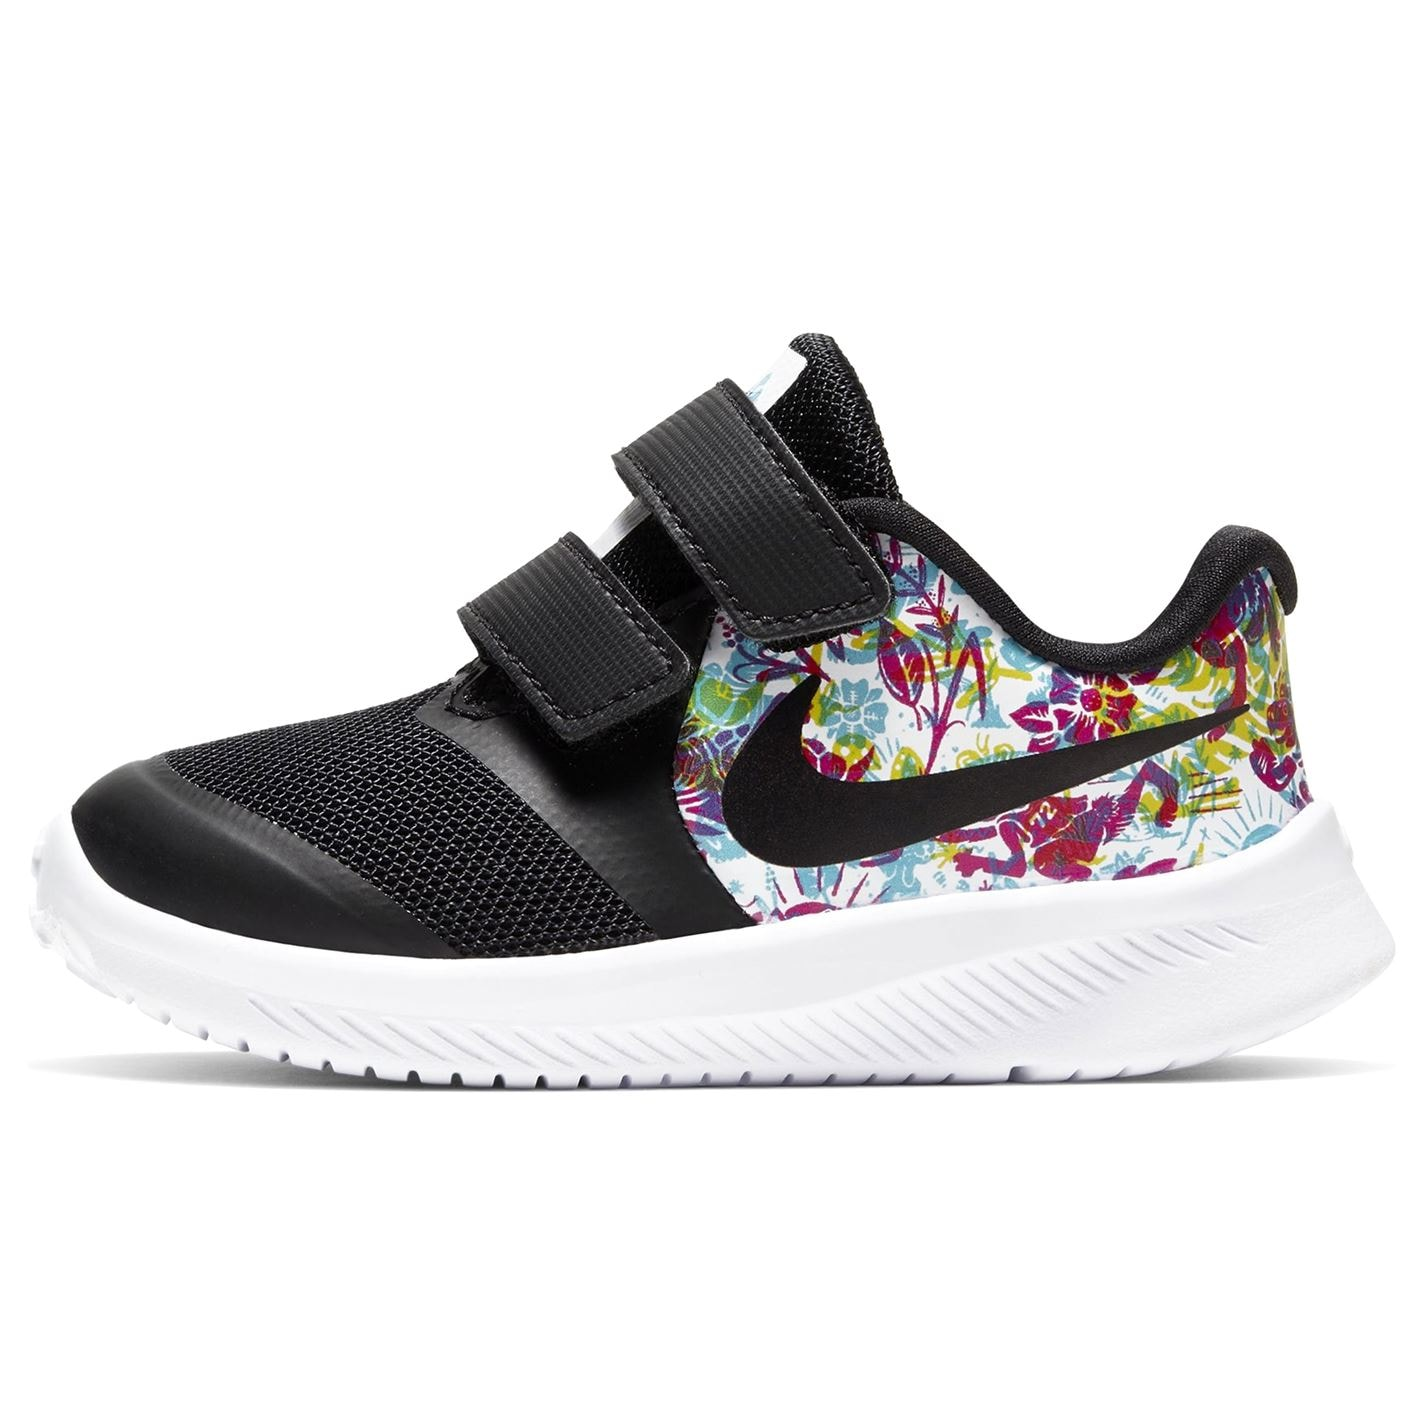 Nike Star Run Fable Trainers Infant Girls BLACK/BLACK-FIRE PINK-BLUE FUR